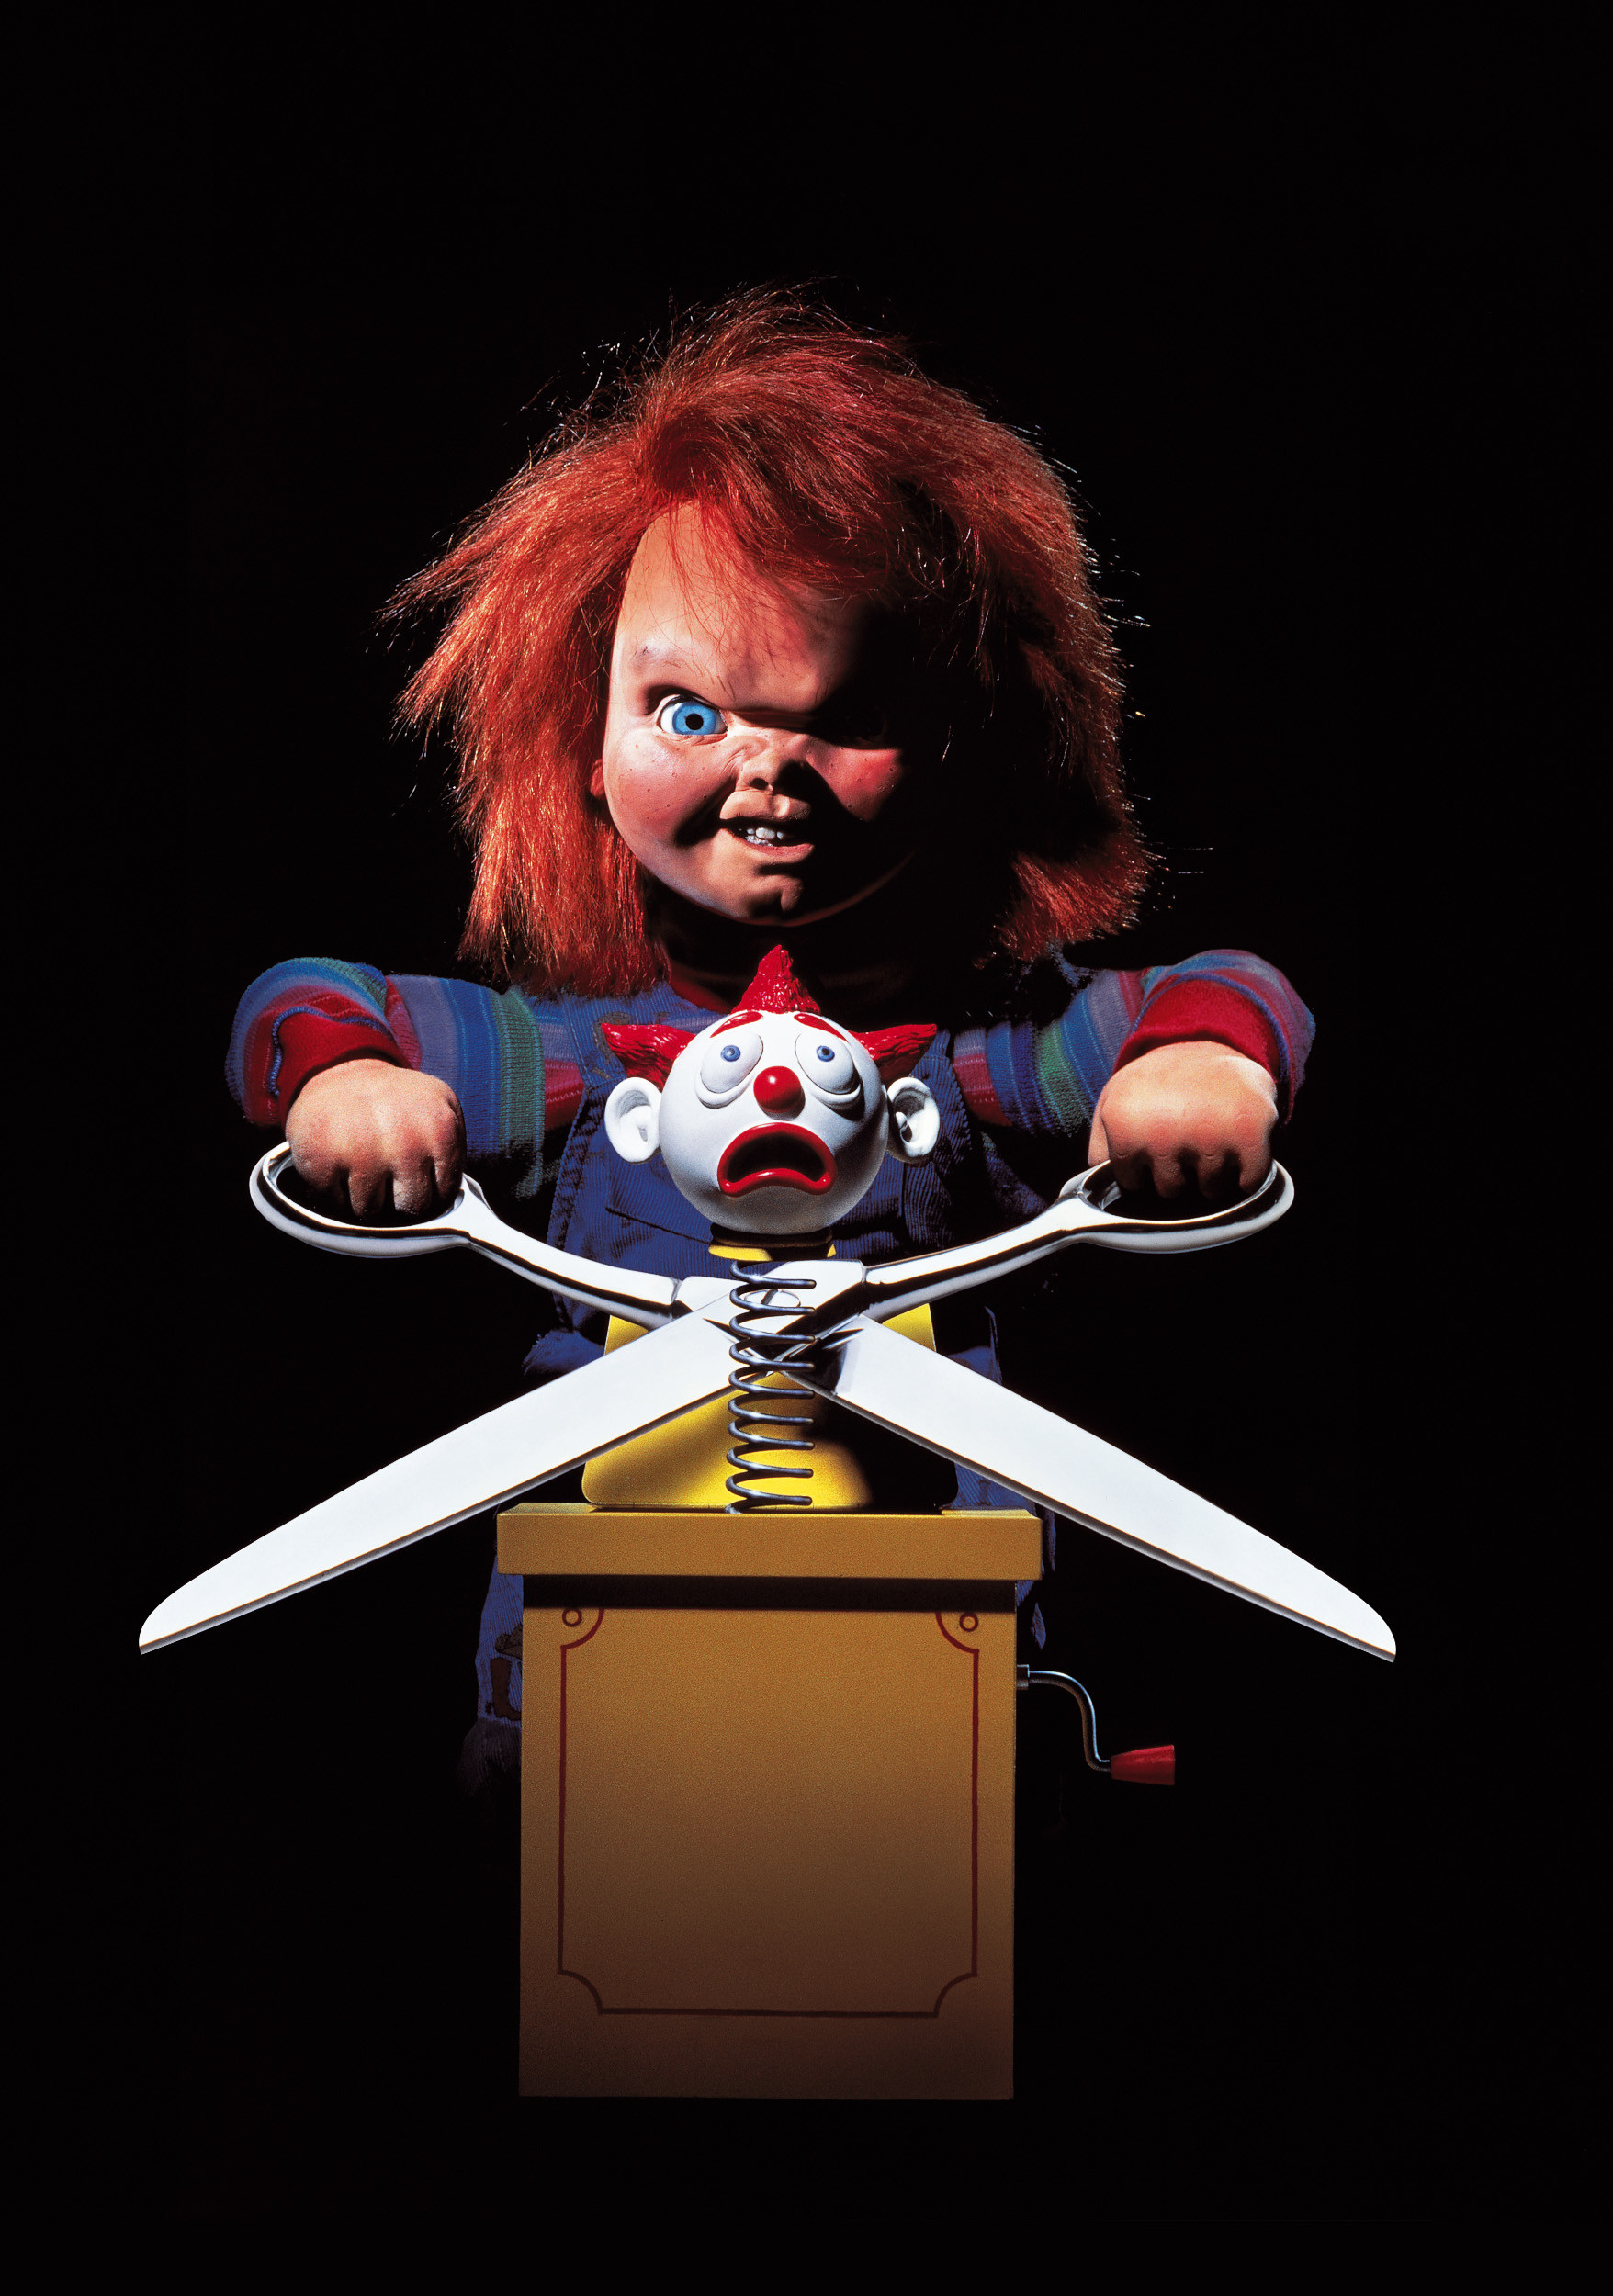 Chucky wallpaper hd 72 images 1920x1080 chucky slash dash iphone and ipad gameplay hd voltagebd Choice Image